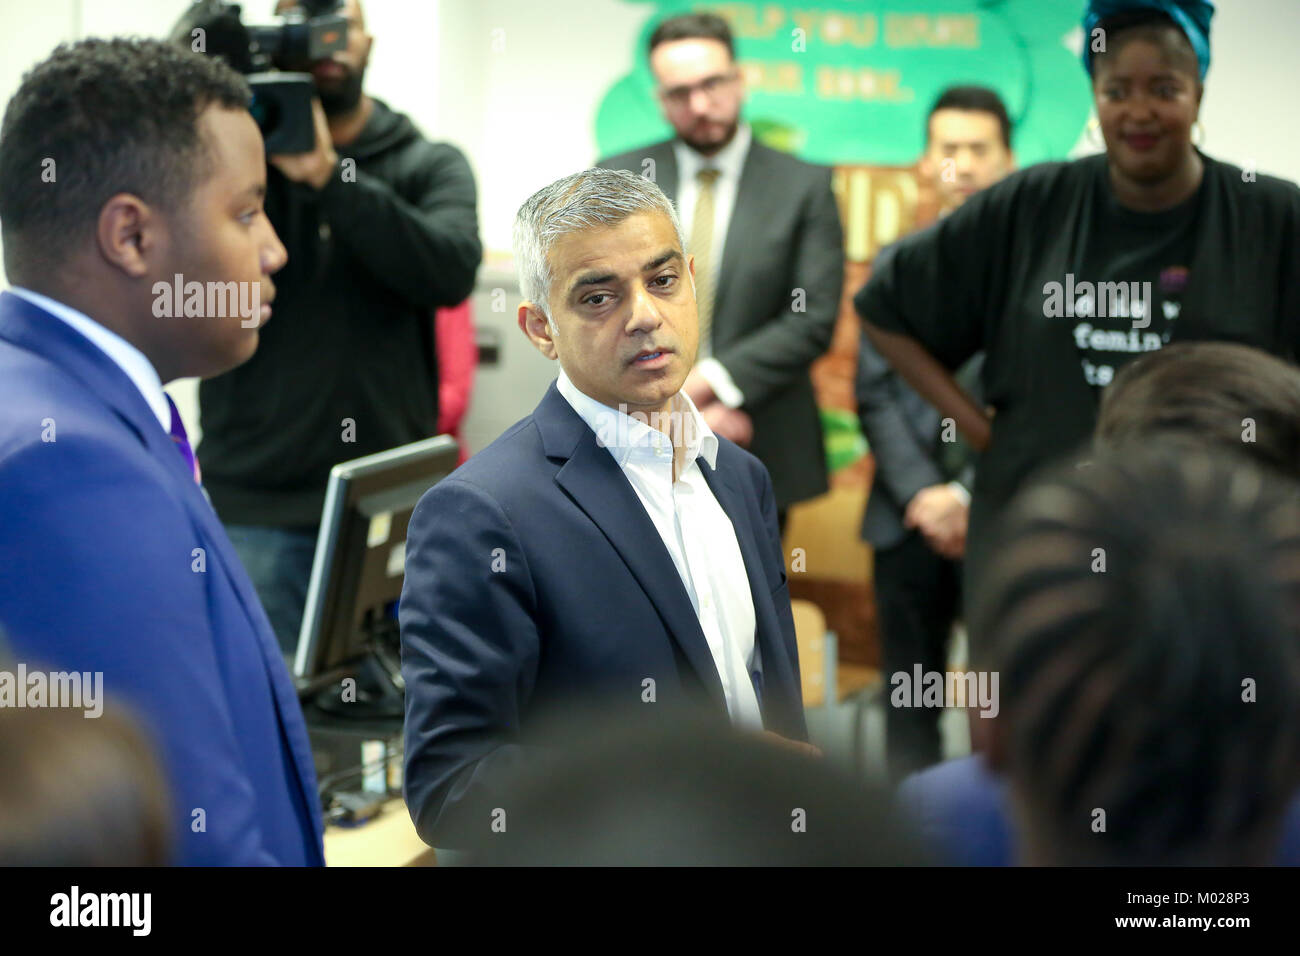 Ahead of the centenary of the first women in the UK securing the right to vote, the Mayor of London, Sadiq Khan, - Stock Image